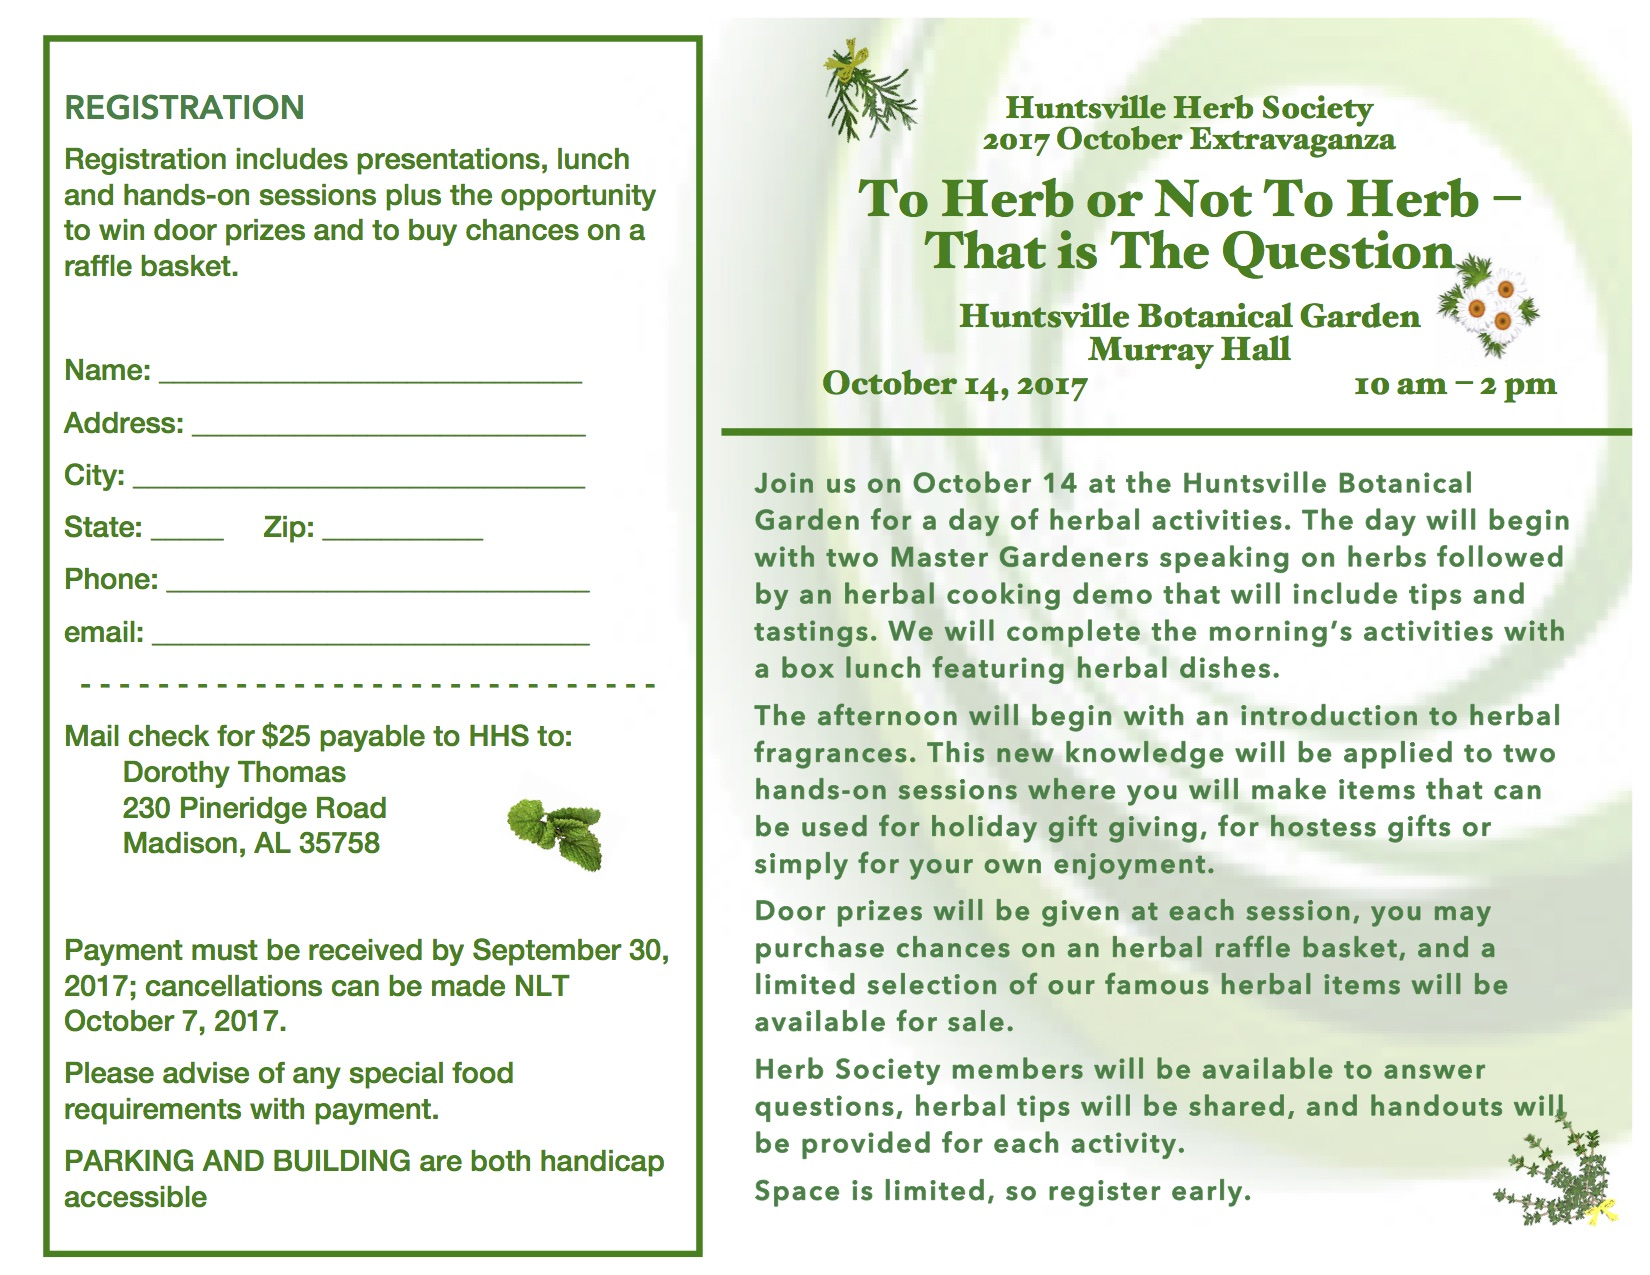 Huntsville Herb Society - October Extravaganza @ Murray Hall